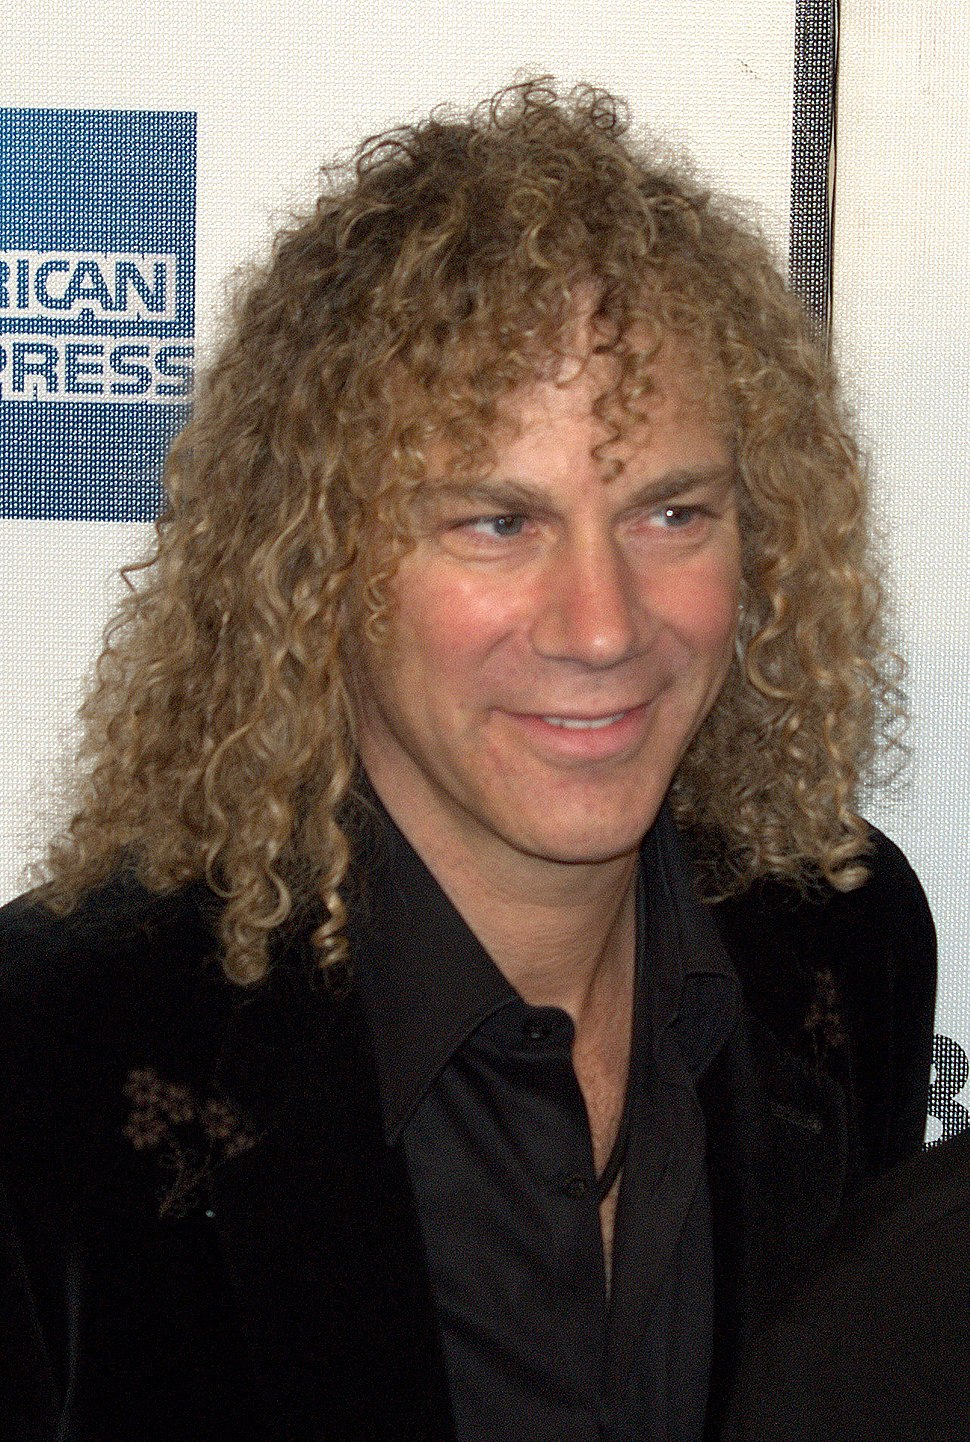 David Bryan of Bon Jovi at the 2009 Tribeca Film Festival